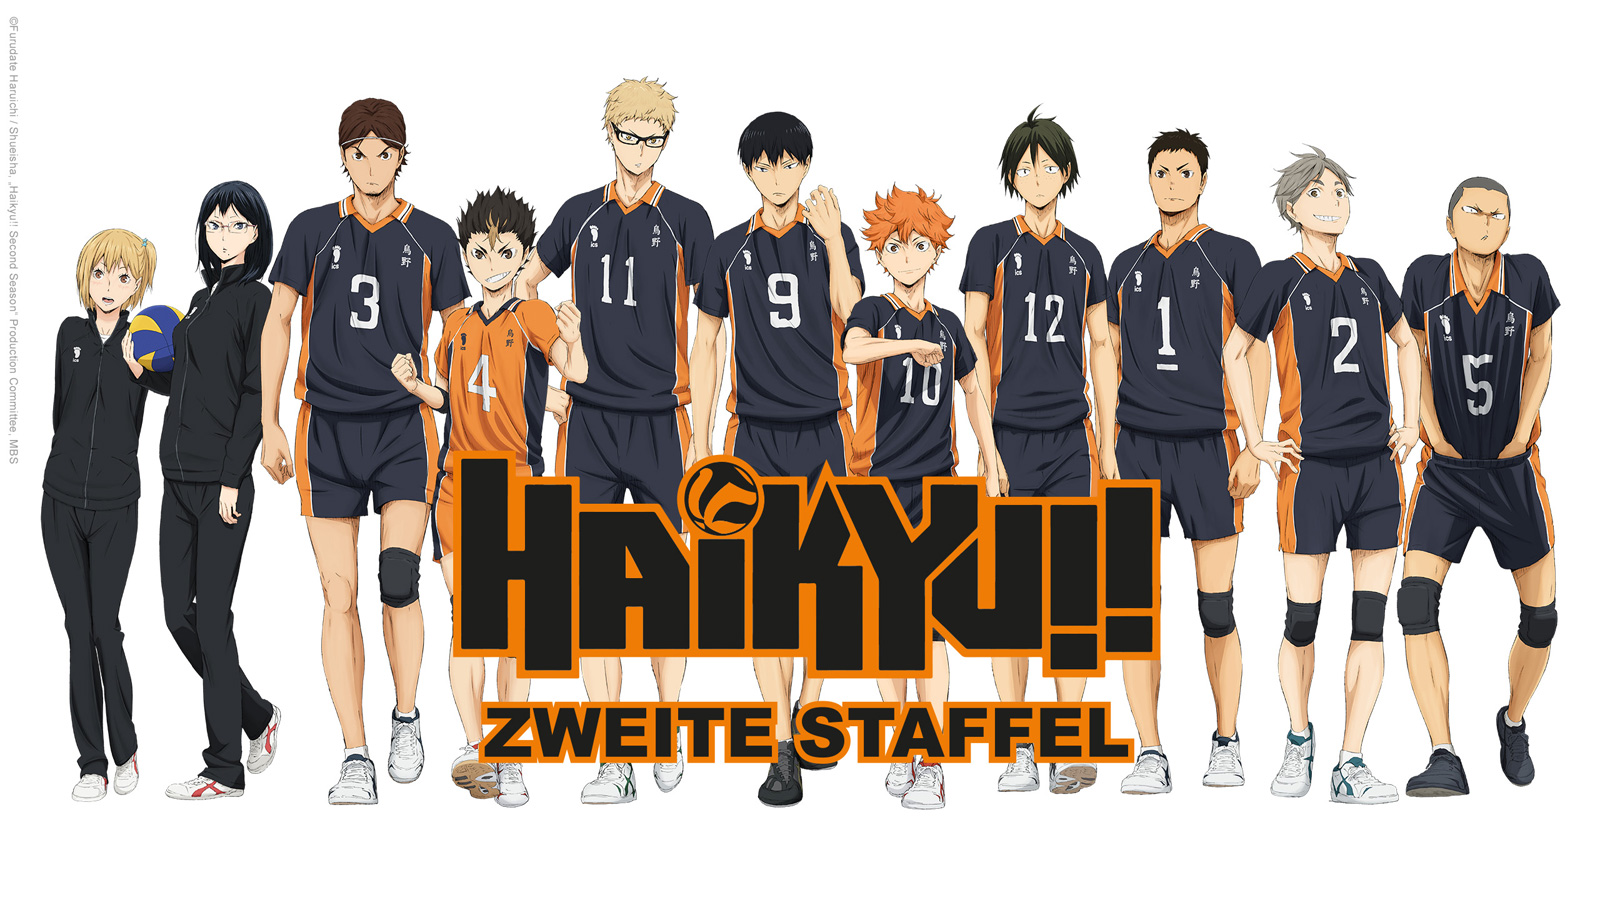 ANIMAX zeigt die 2. Staffel der Hit-Serie Haikyu!! Volume 1 - Episode